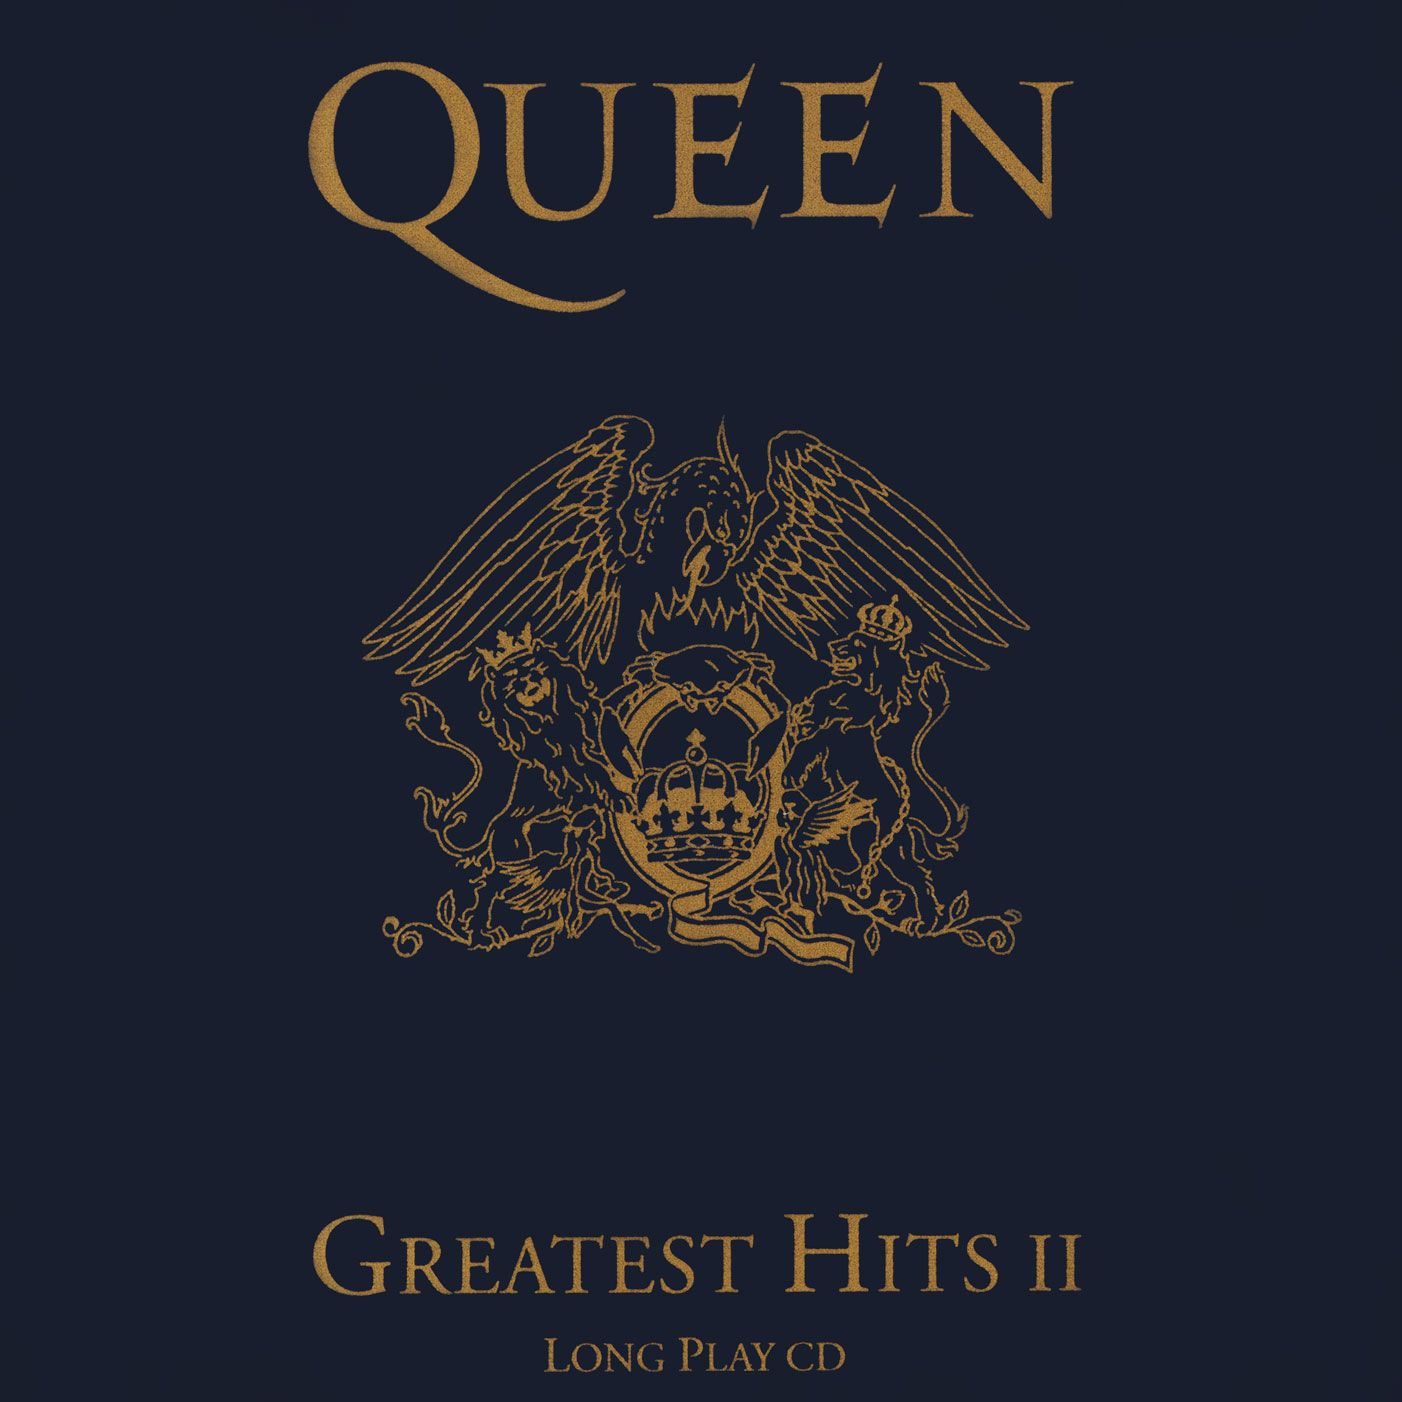 Queen - Greatest Hits II album cover